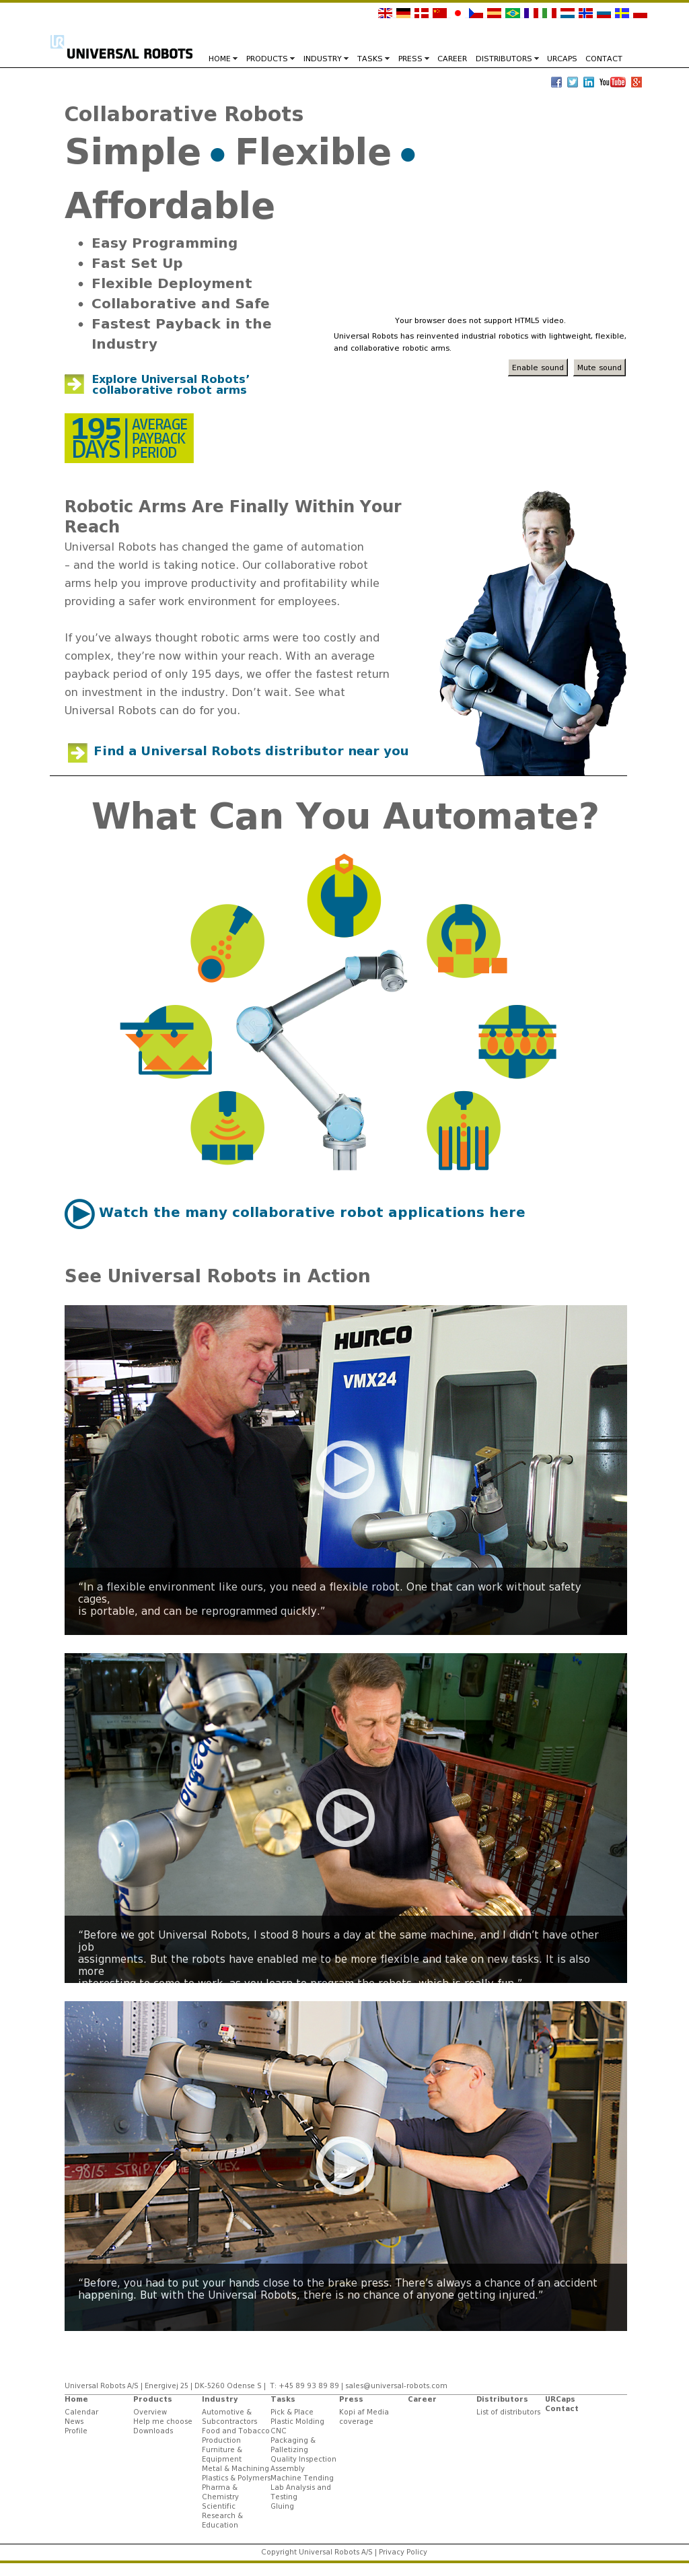 Universal Robots Competitors, Revenue and Employees - Owler